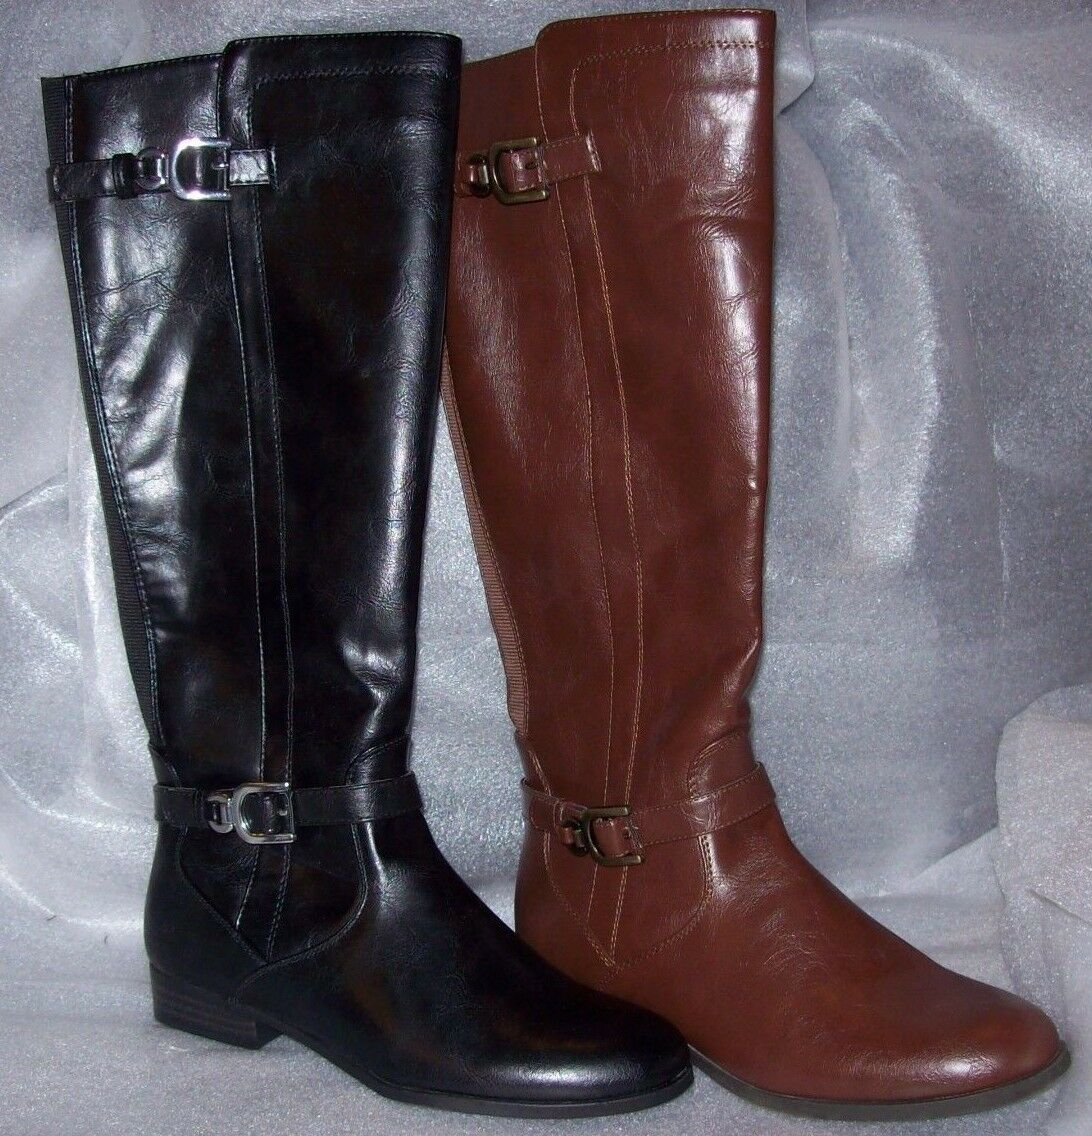 WOMEN'S UNISA TALA TALL RIDING BOOTS MULTIPLE COLORS & SIZES NEW IN BOX MSRP0